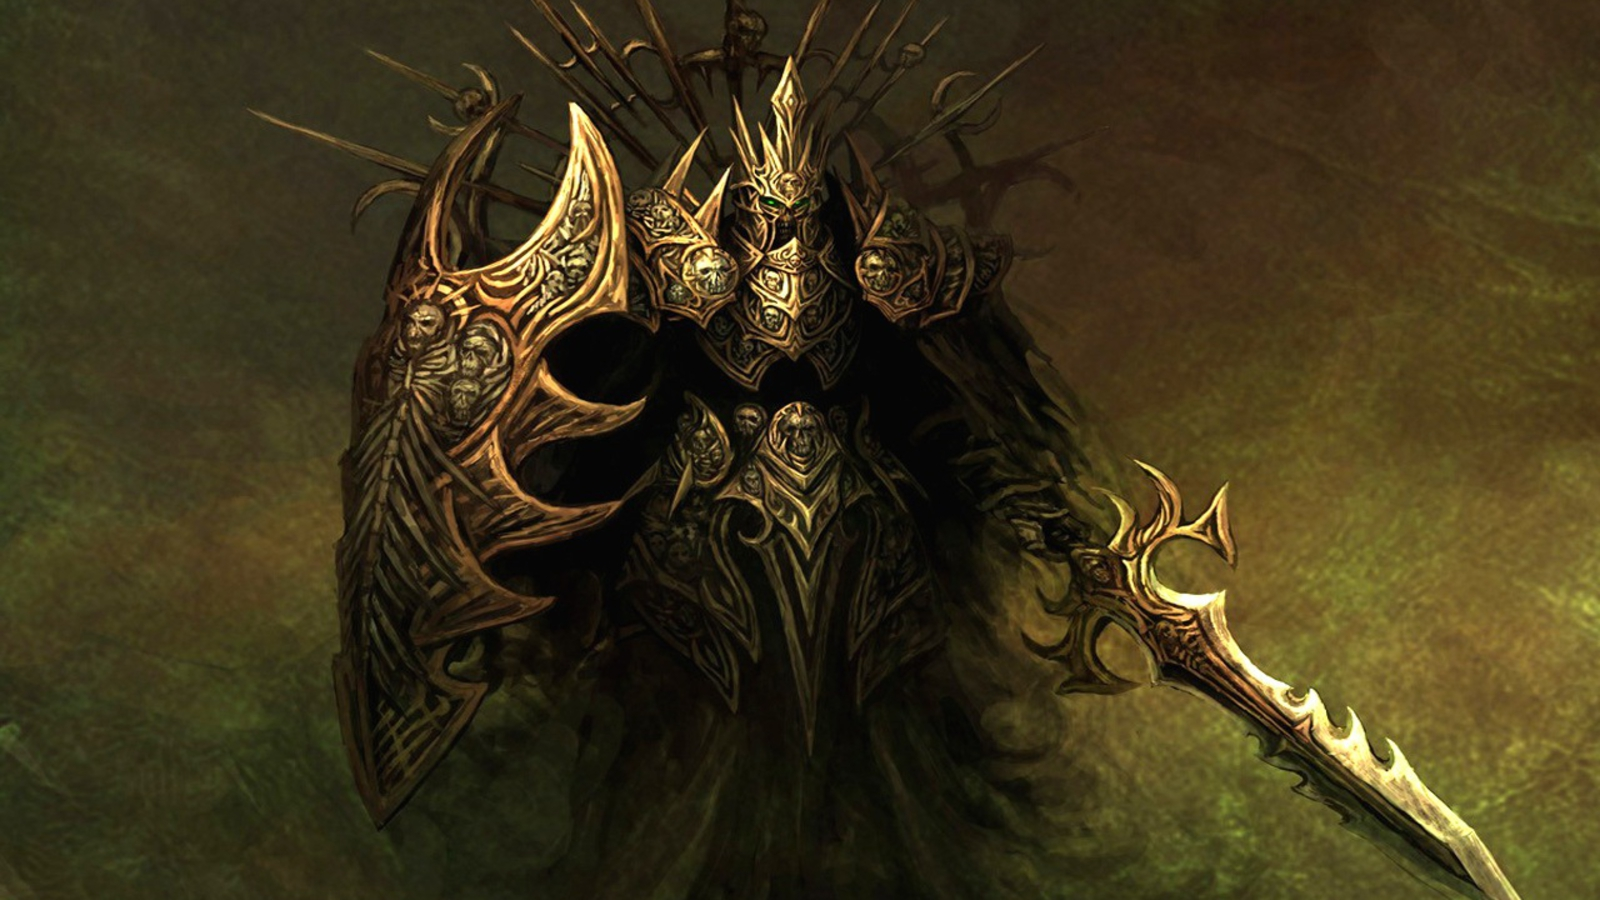 Warlord Computer Wallpapers Desktop Backgrounds 1600x900 ID